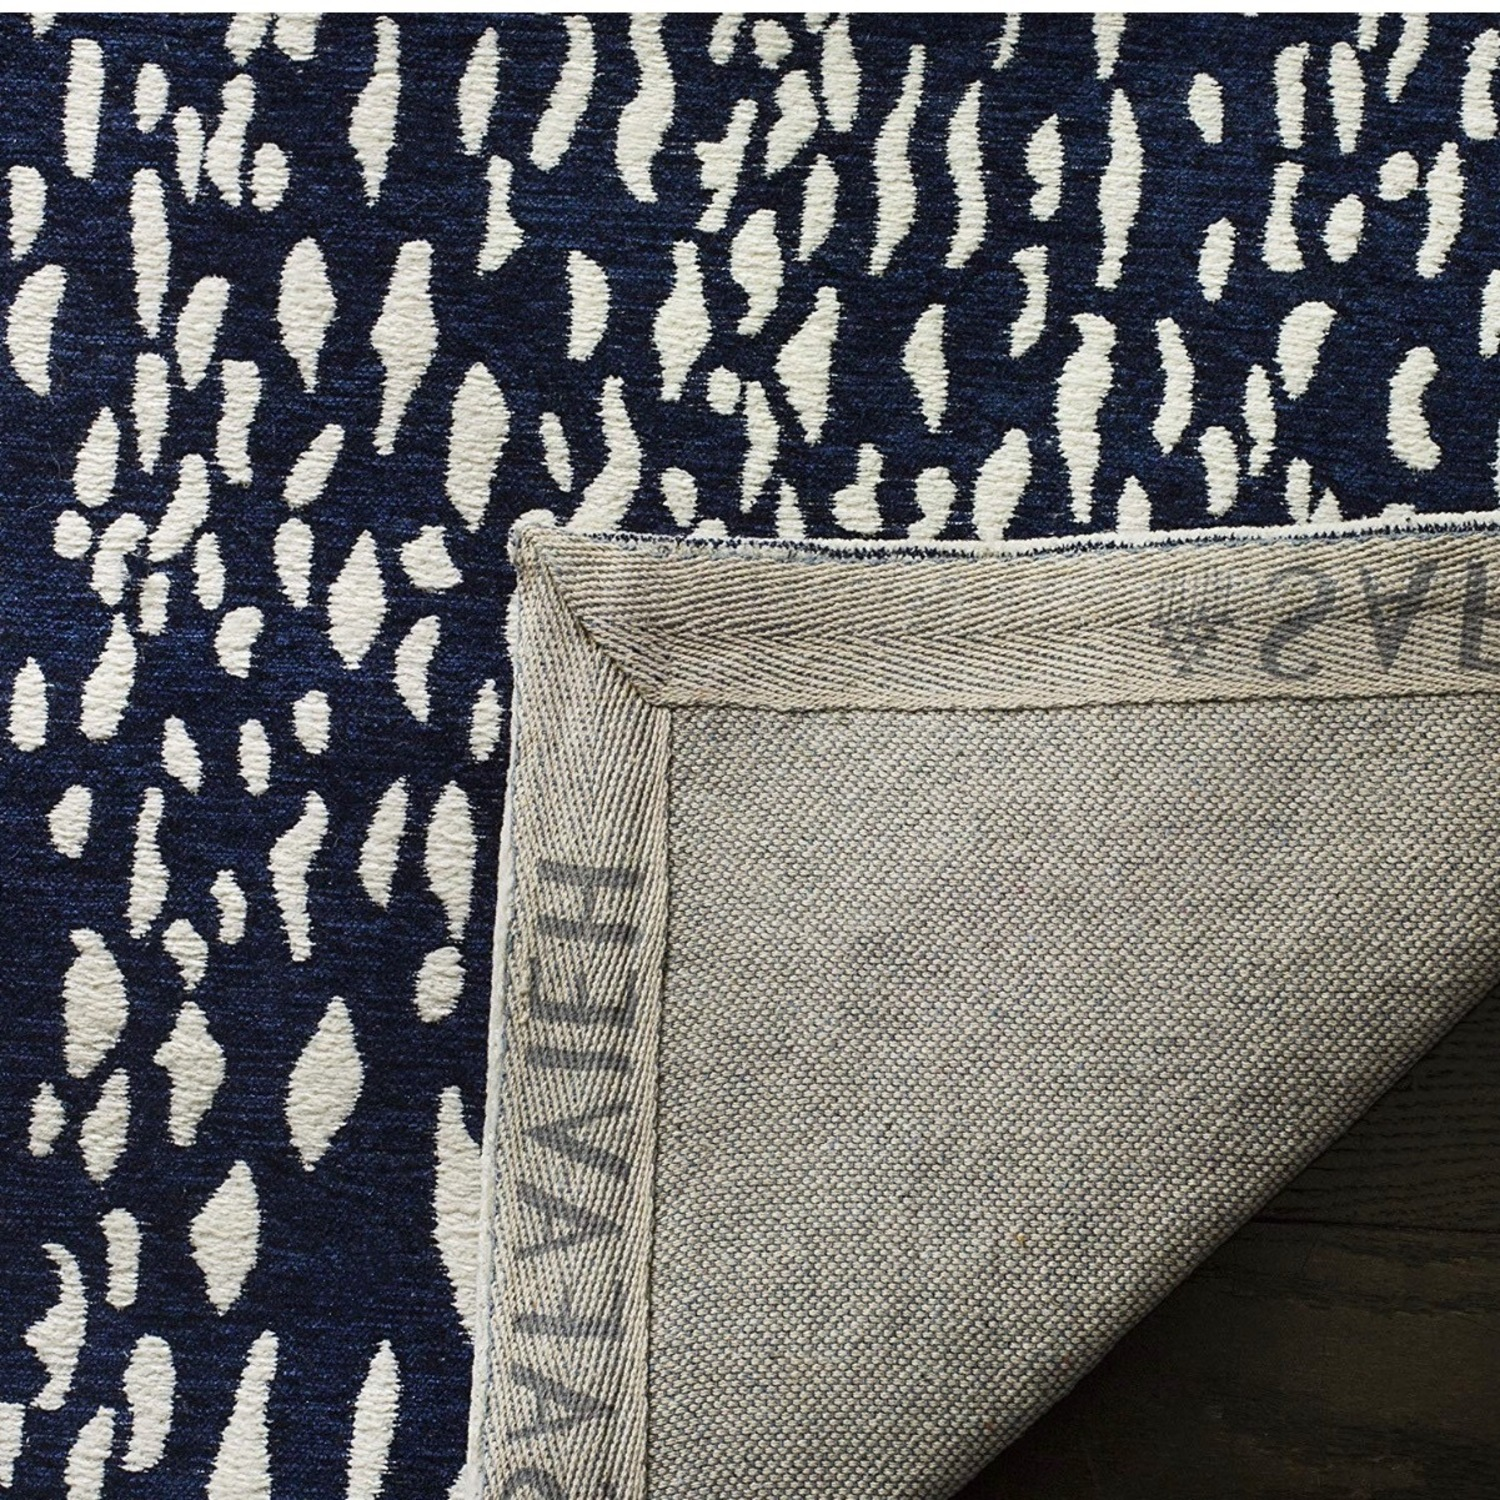 Safavieh Navy Blue and Ivory Area Rug - image-3